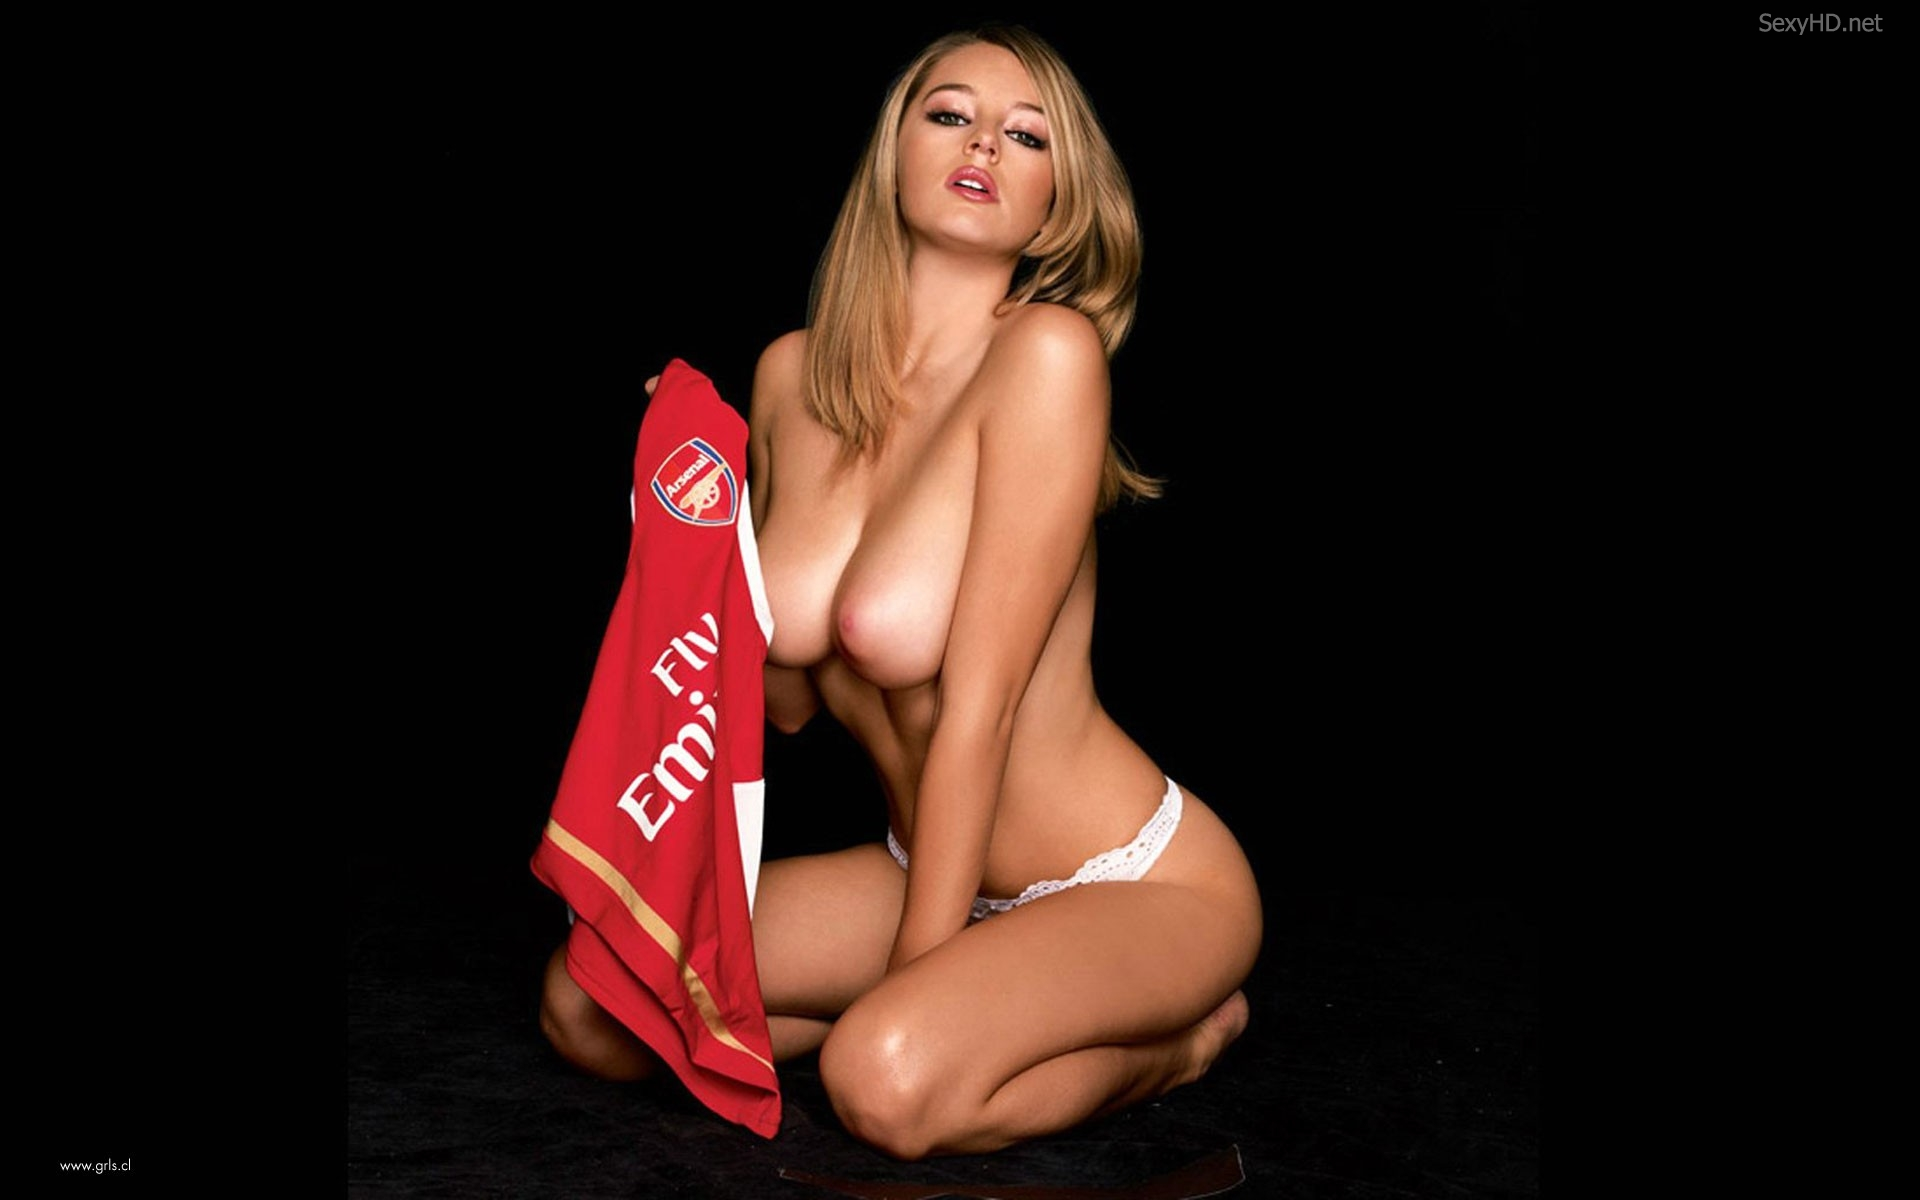 topless-keeley-hazell-arsenal-2015-2858